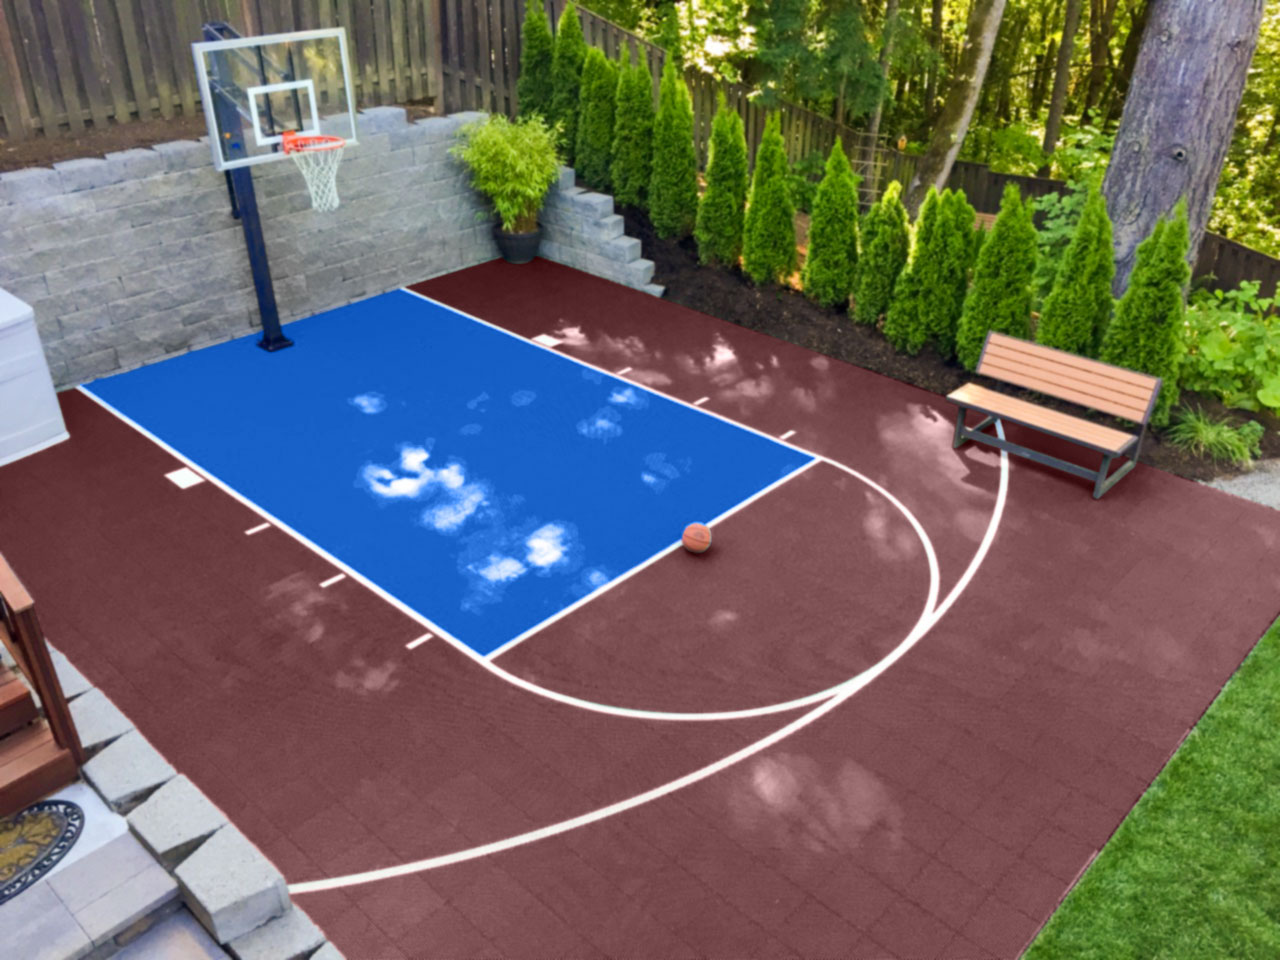 Burgundy and bright blue 20 x 25 basketball court